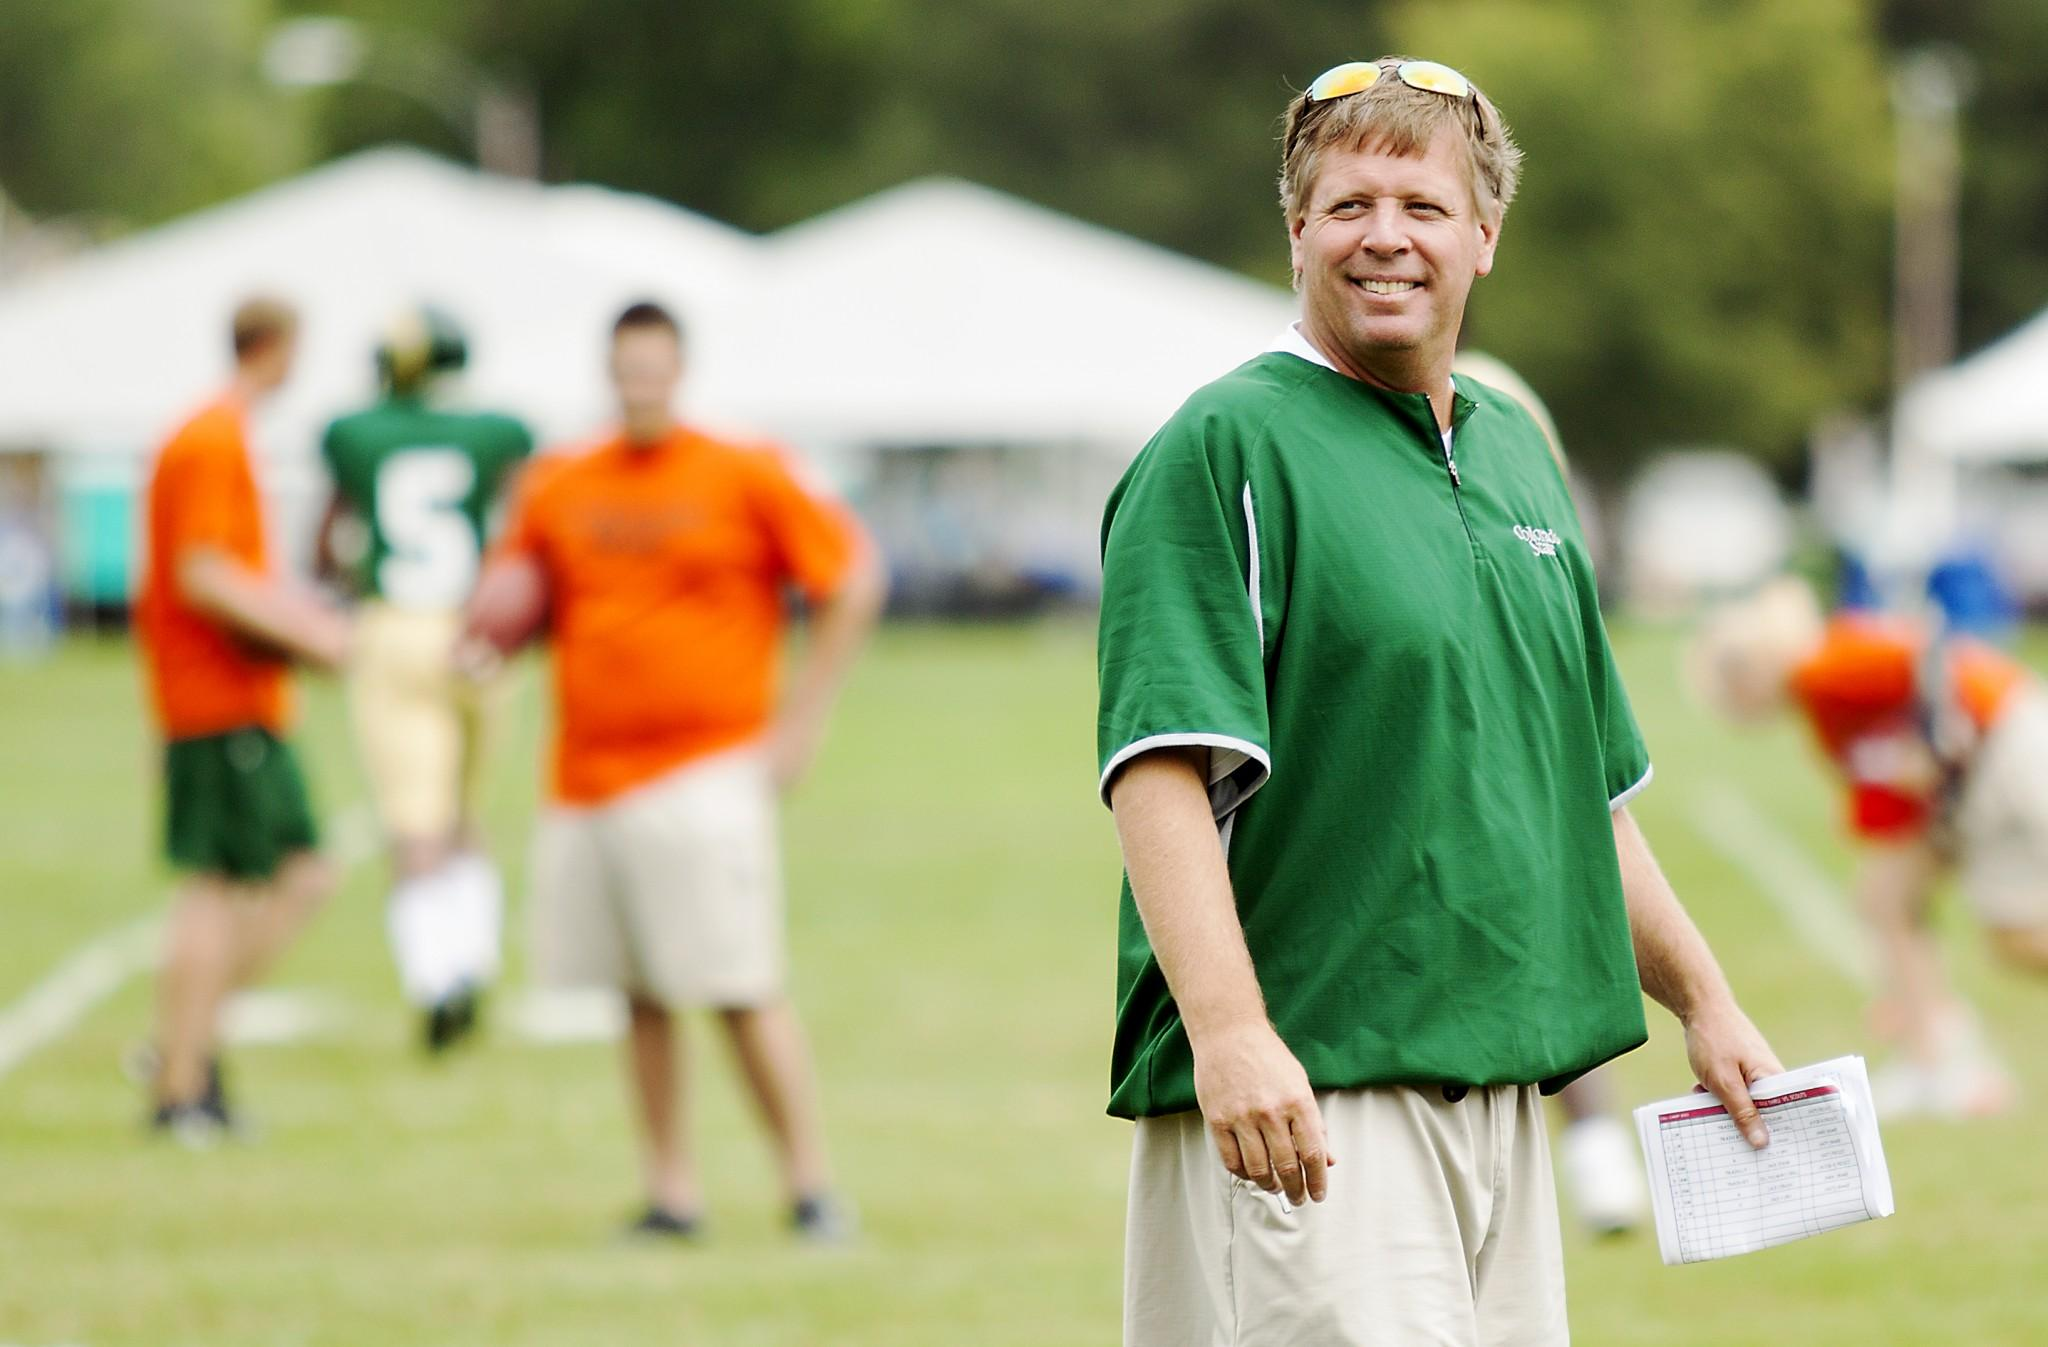 Coach Jim McElwain walks across the field during practice on Friday, Aug. 24. The Rocky Mountain Showdown will be McElwain's first regular season game as a head coach at CSU.